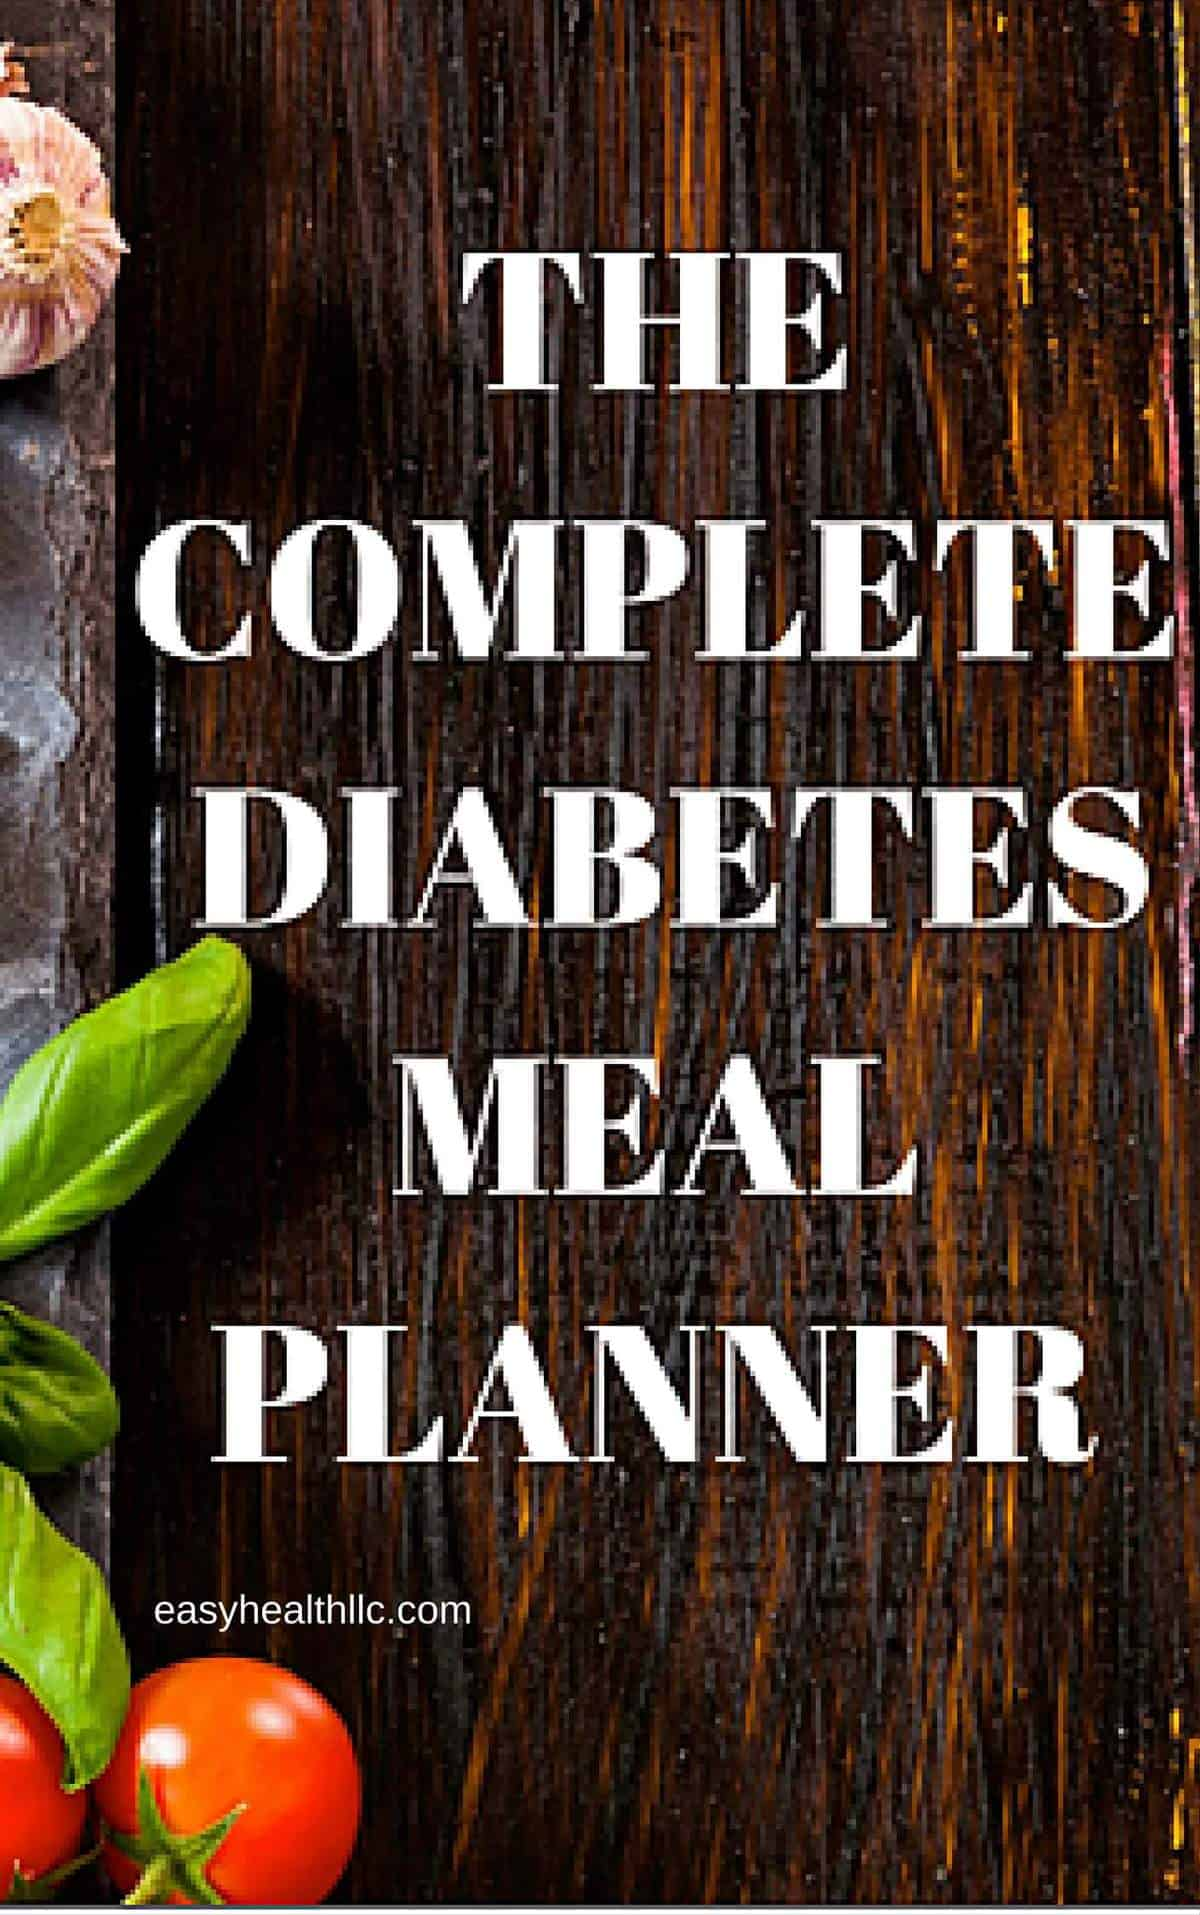 The Complete Diabetes Meal Plannerebook containsdietitian-diabetes educator approved sample menus, meal plans and recipes complete with nutritional information. Helps take the hassle out of eating right for diabetes.Get yours today and take charge of your diet! #diabetesdiet #mealplans